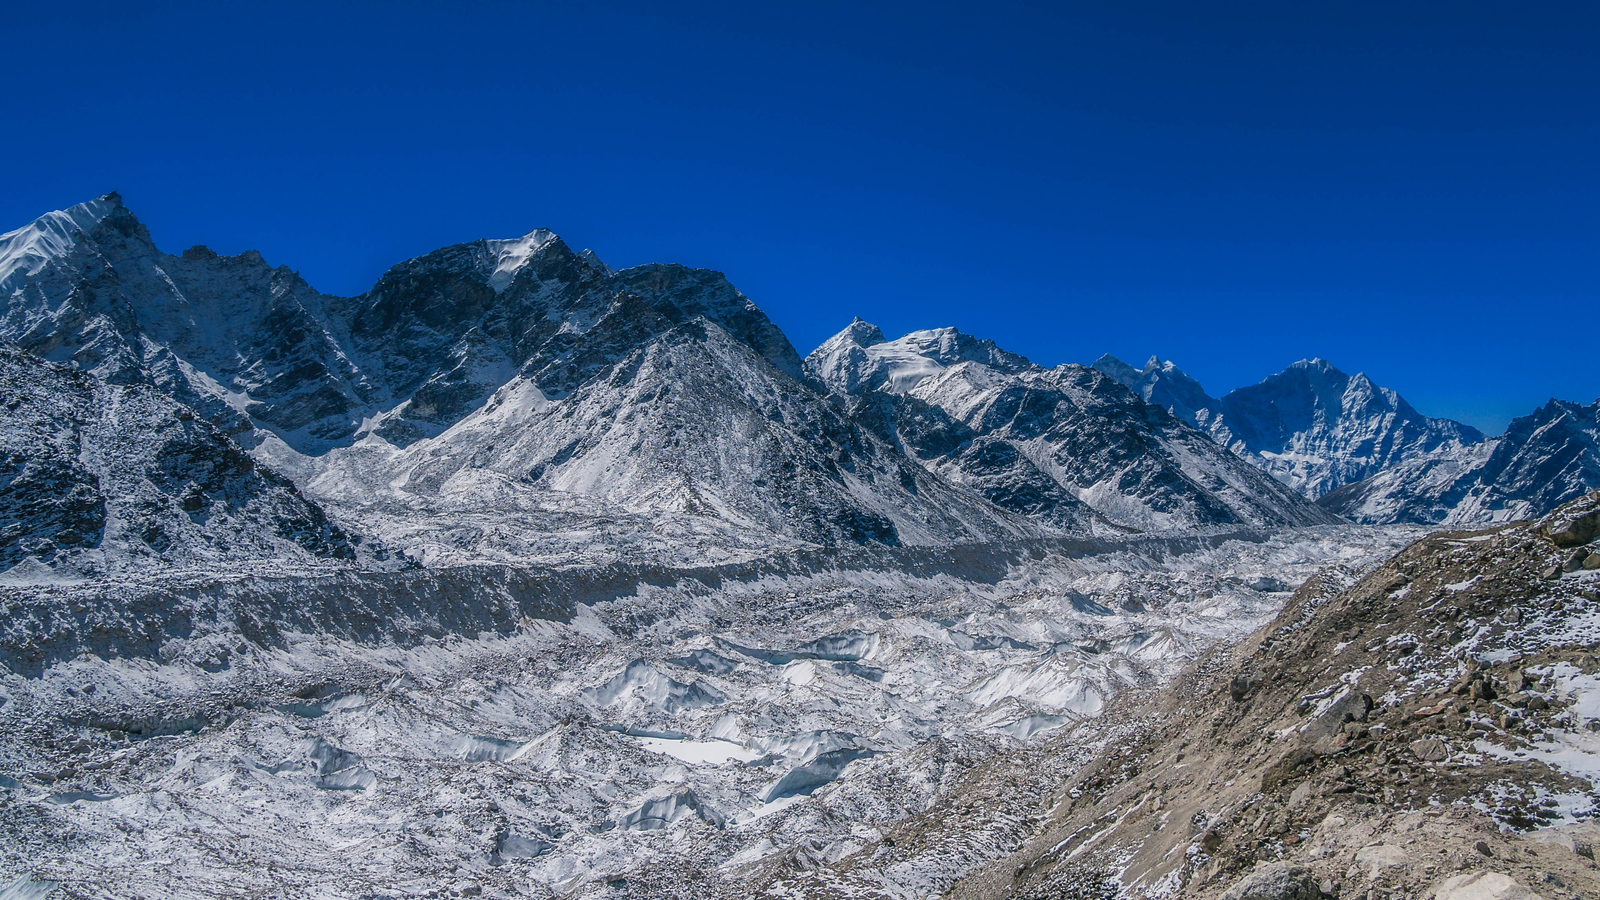 Looking back across the Khumbu Ice Fall.